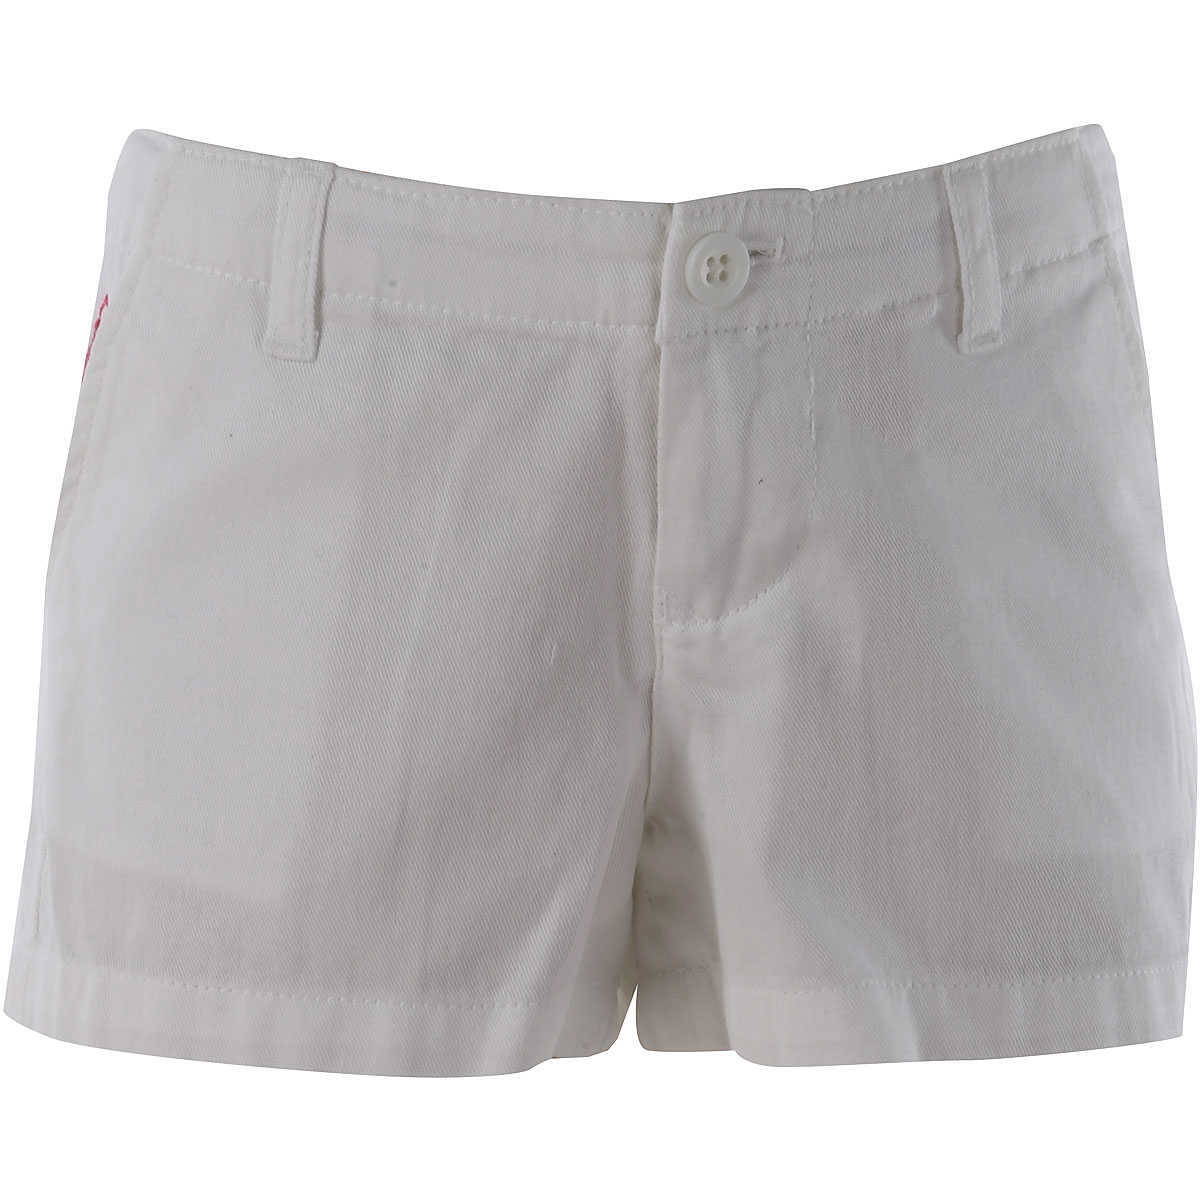 Ralph Lauren Kids Shorts for Girls On Sale in Outlet White - GOOFASH - Womens SHORTS